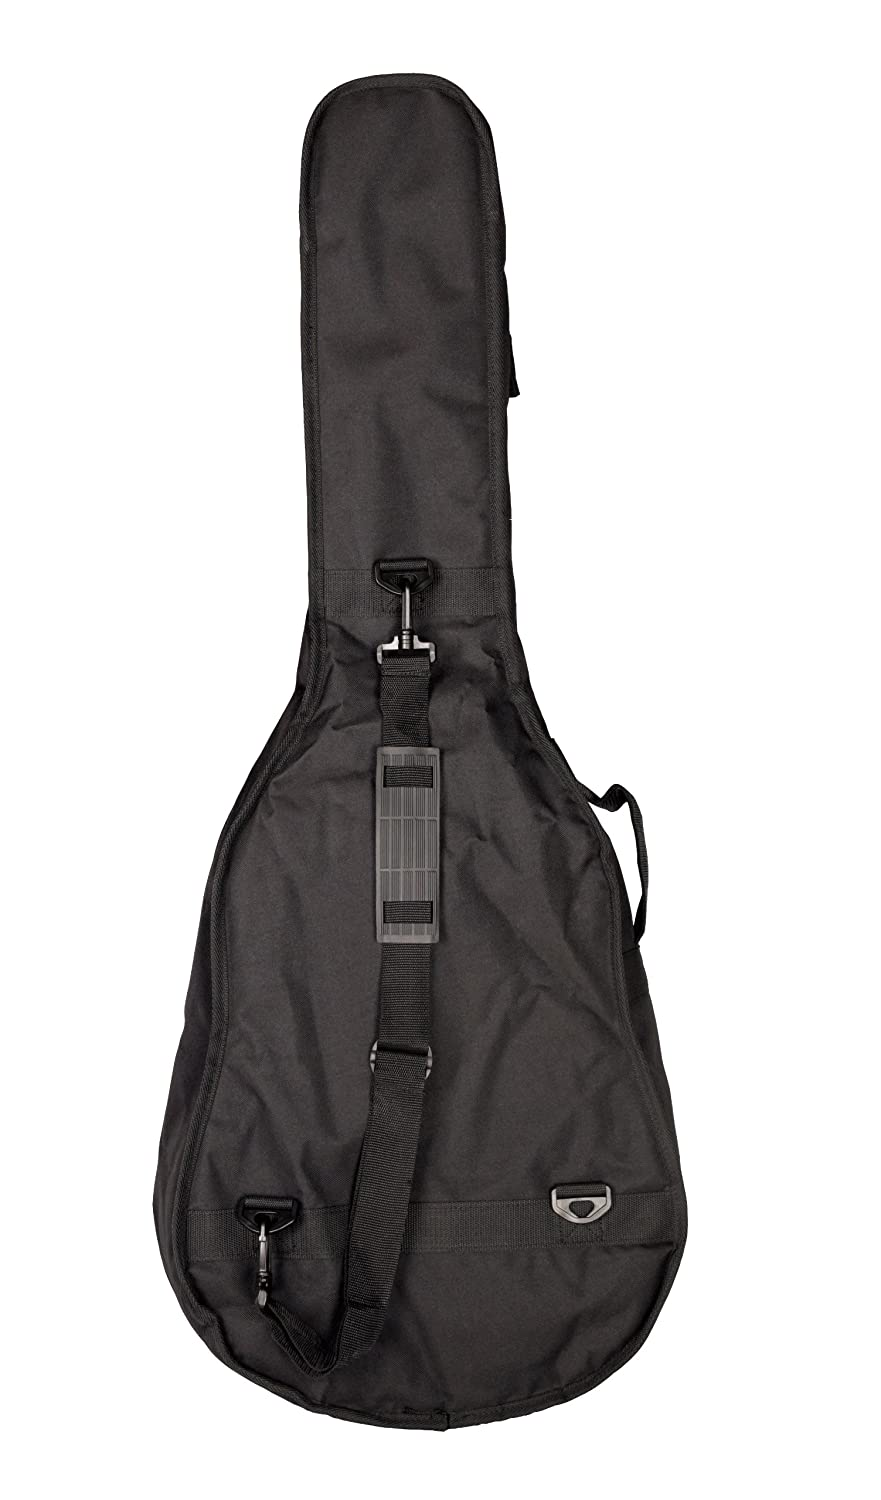 Gator Cases GBE CLASSIC Classical Guitar Image 2